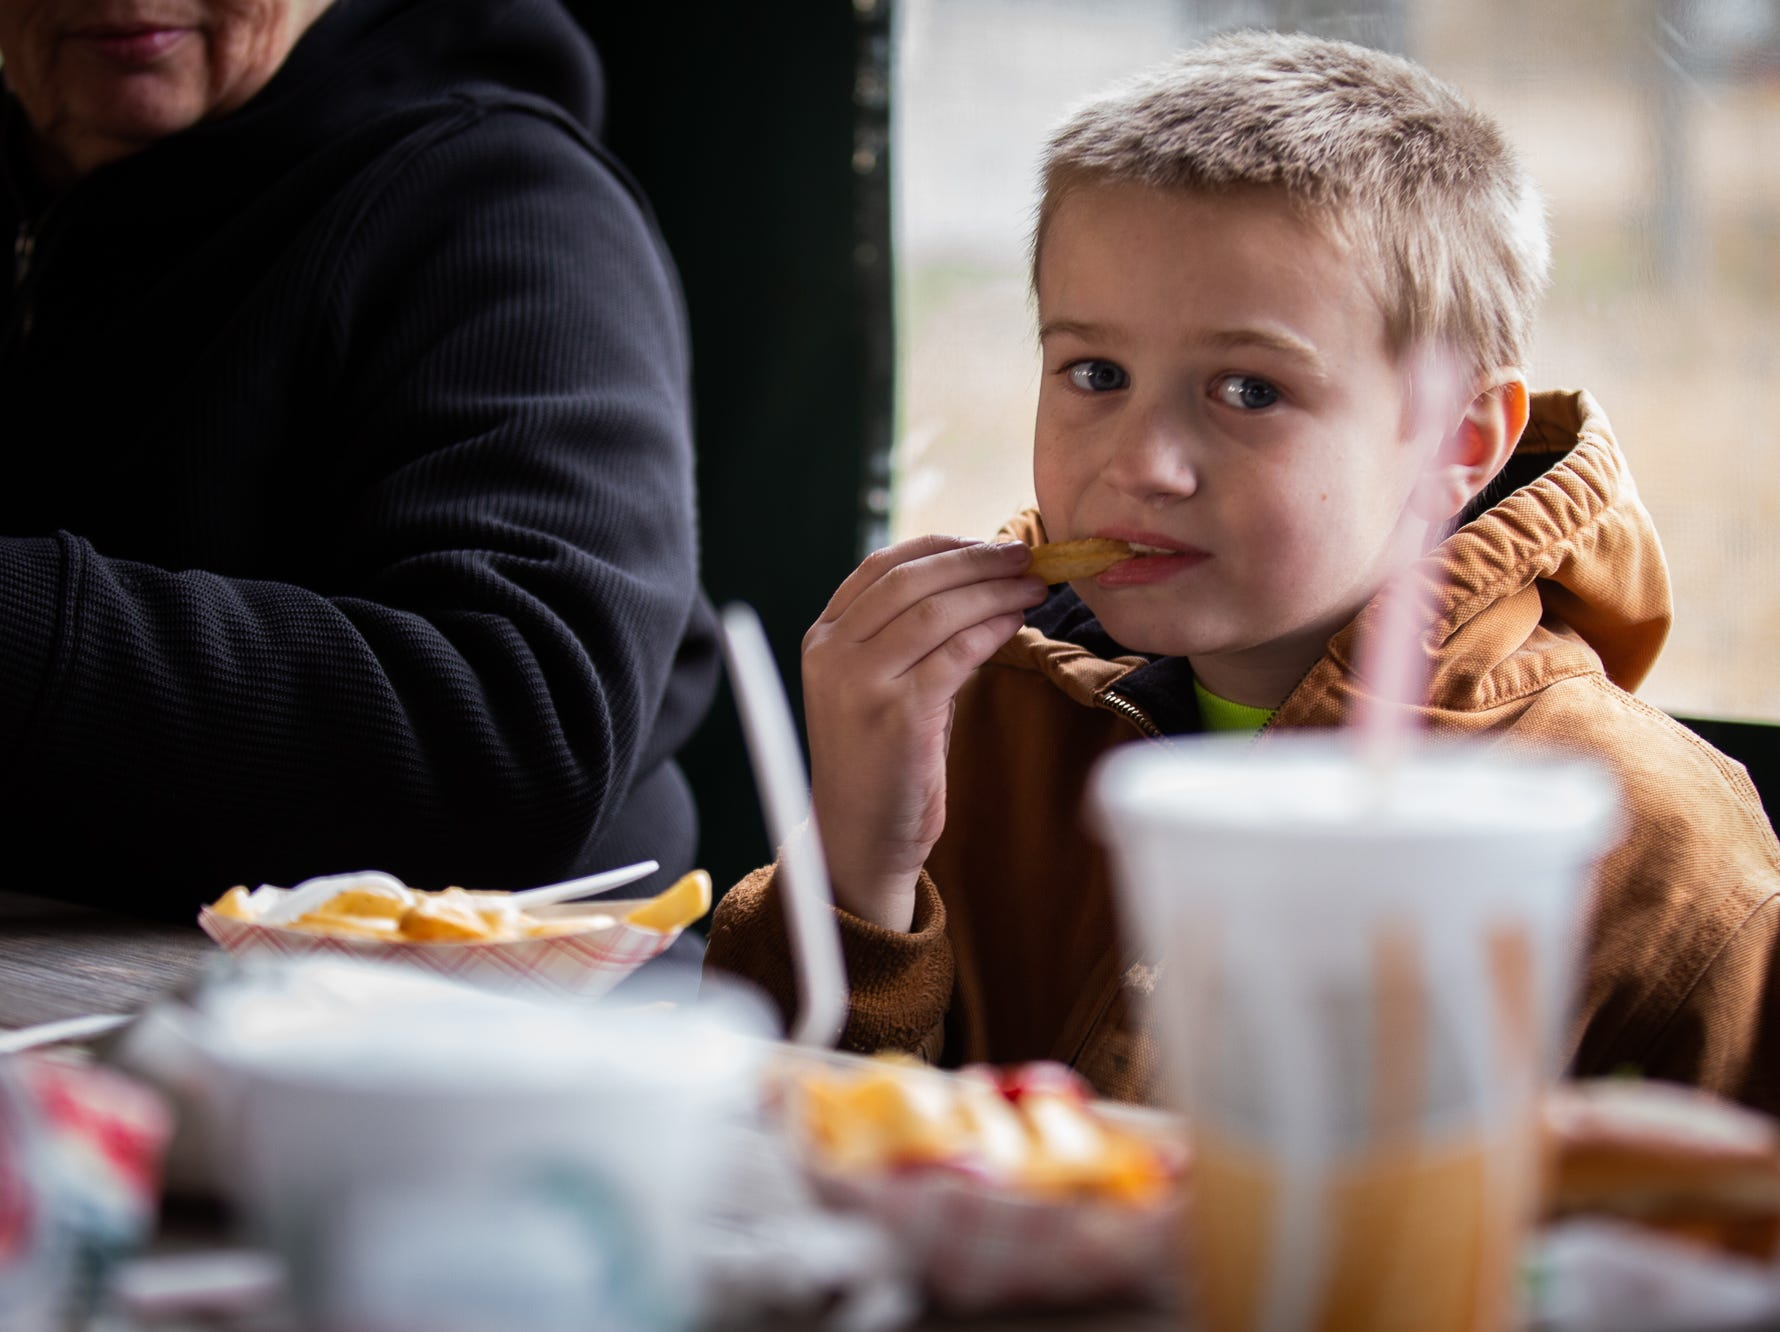 Mason Light, 8, munches on a fry during Tropical Treat's first day of business for the 2019 season, Wednesday, March 13, 2019, in Berwick Township.